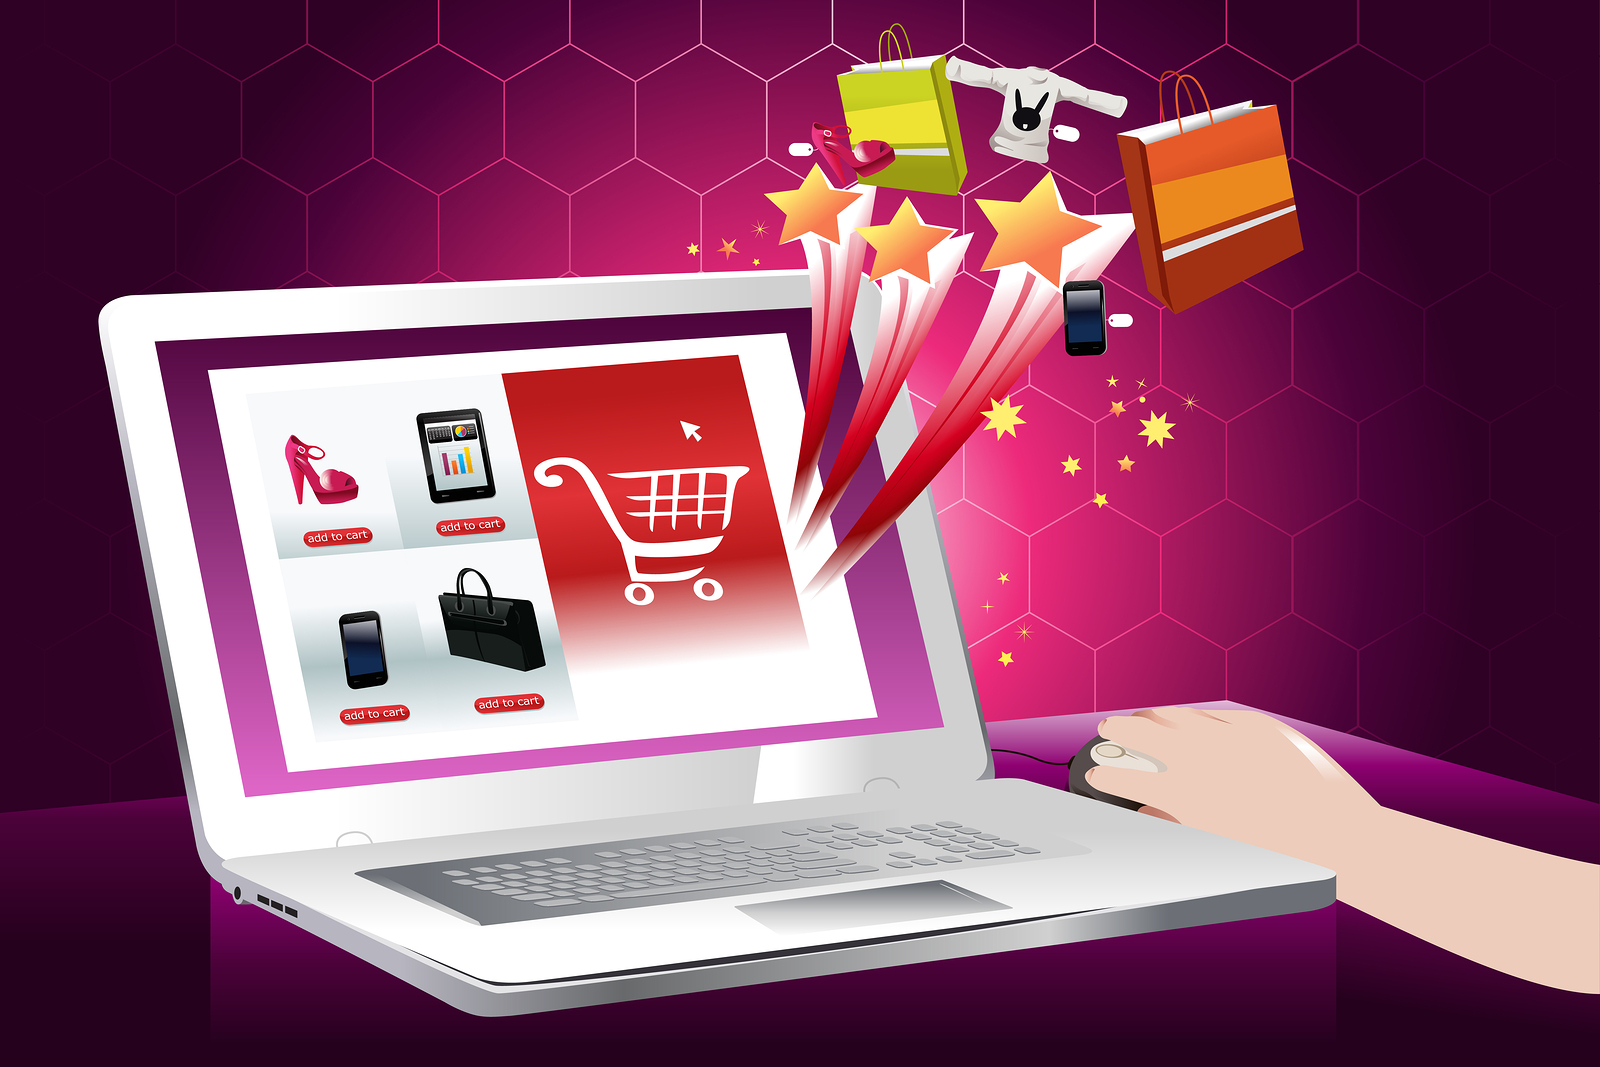 Tips for Retaining the Attention of Your Online Customers